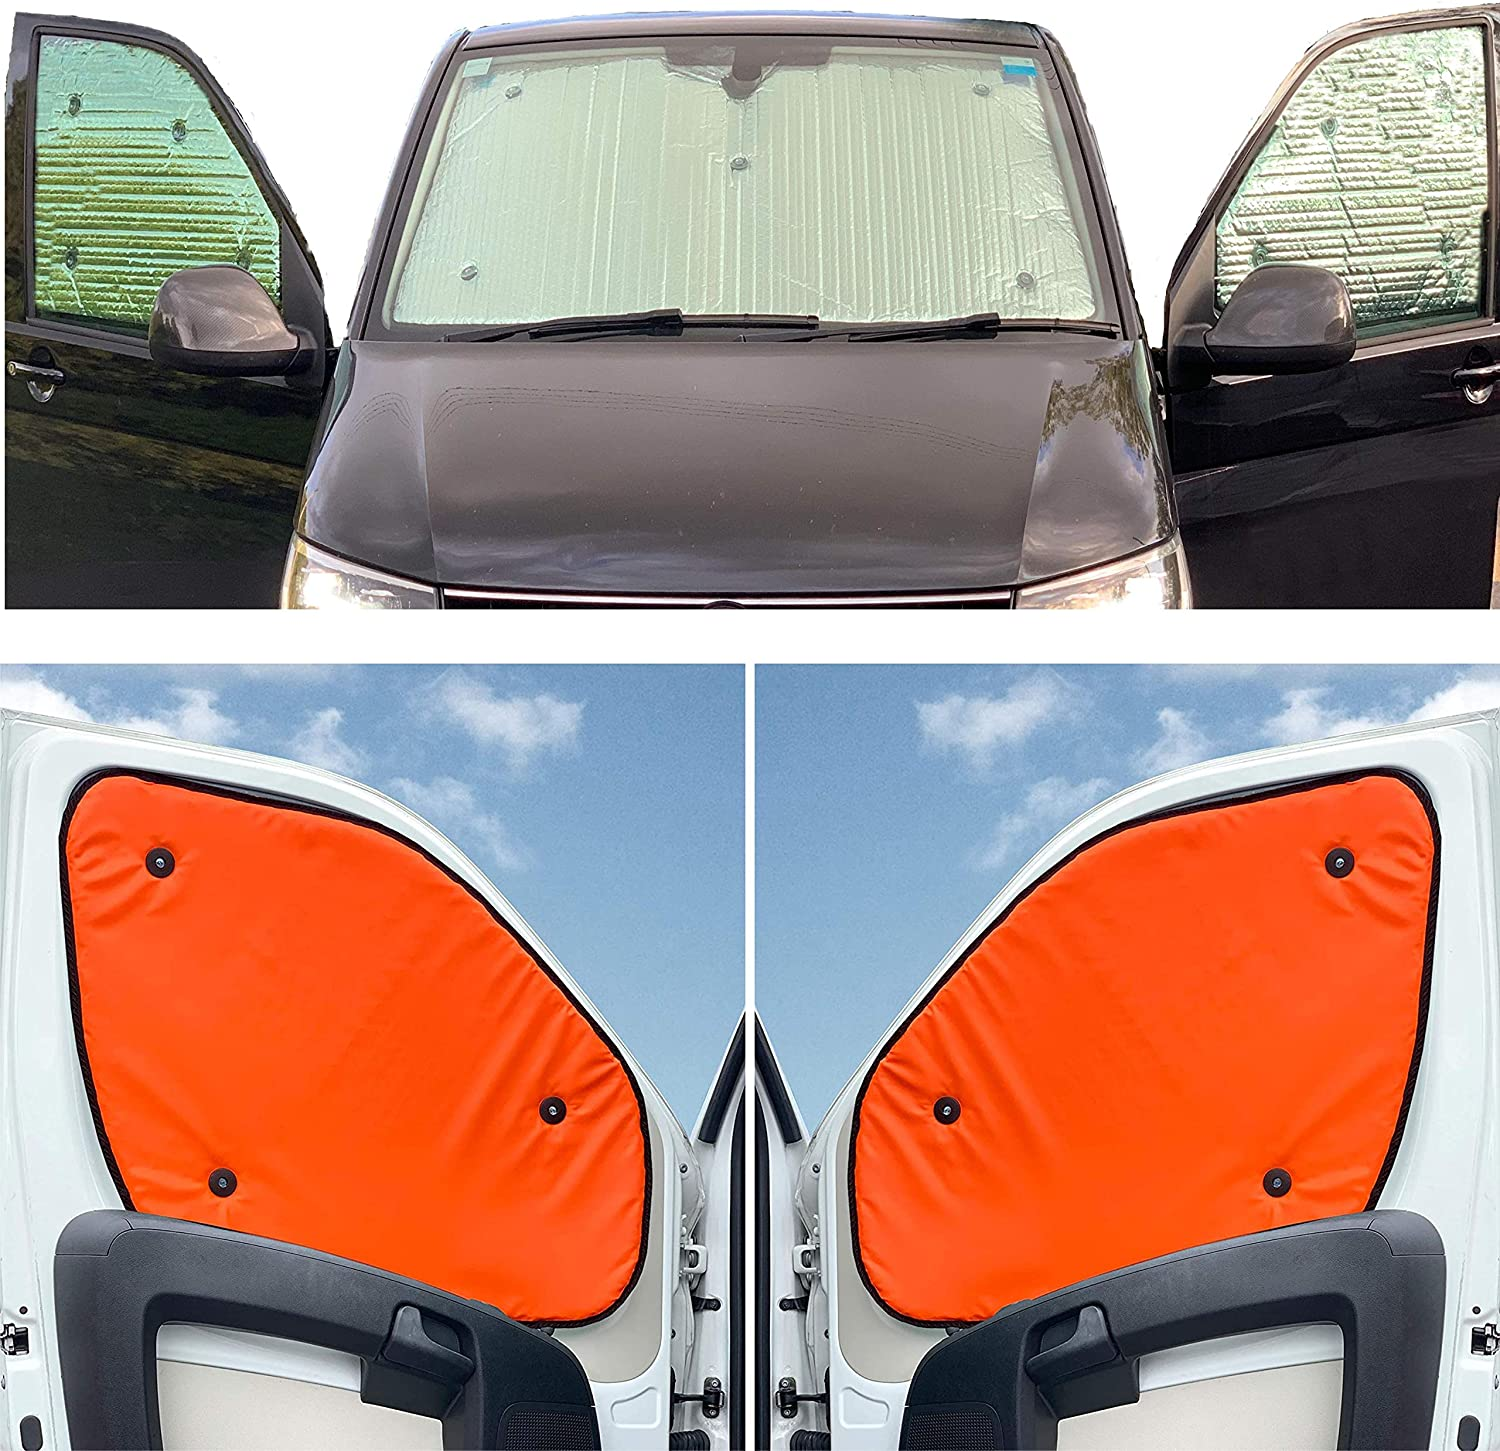 Window Blind Kit ! Super beauty product restock quality top! to Fit Peugeot Full Expert -Date Teepee 2006 Direct store